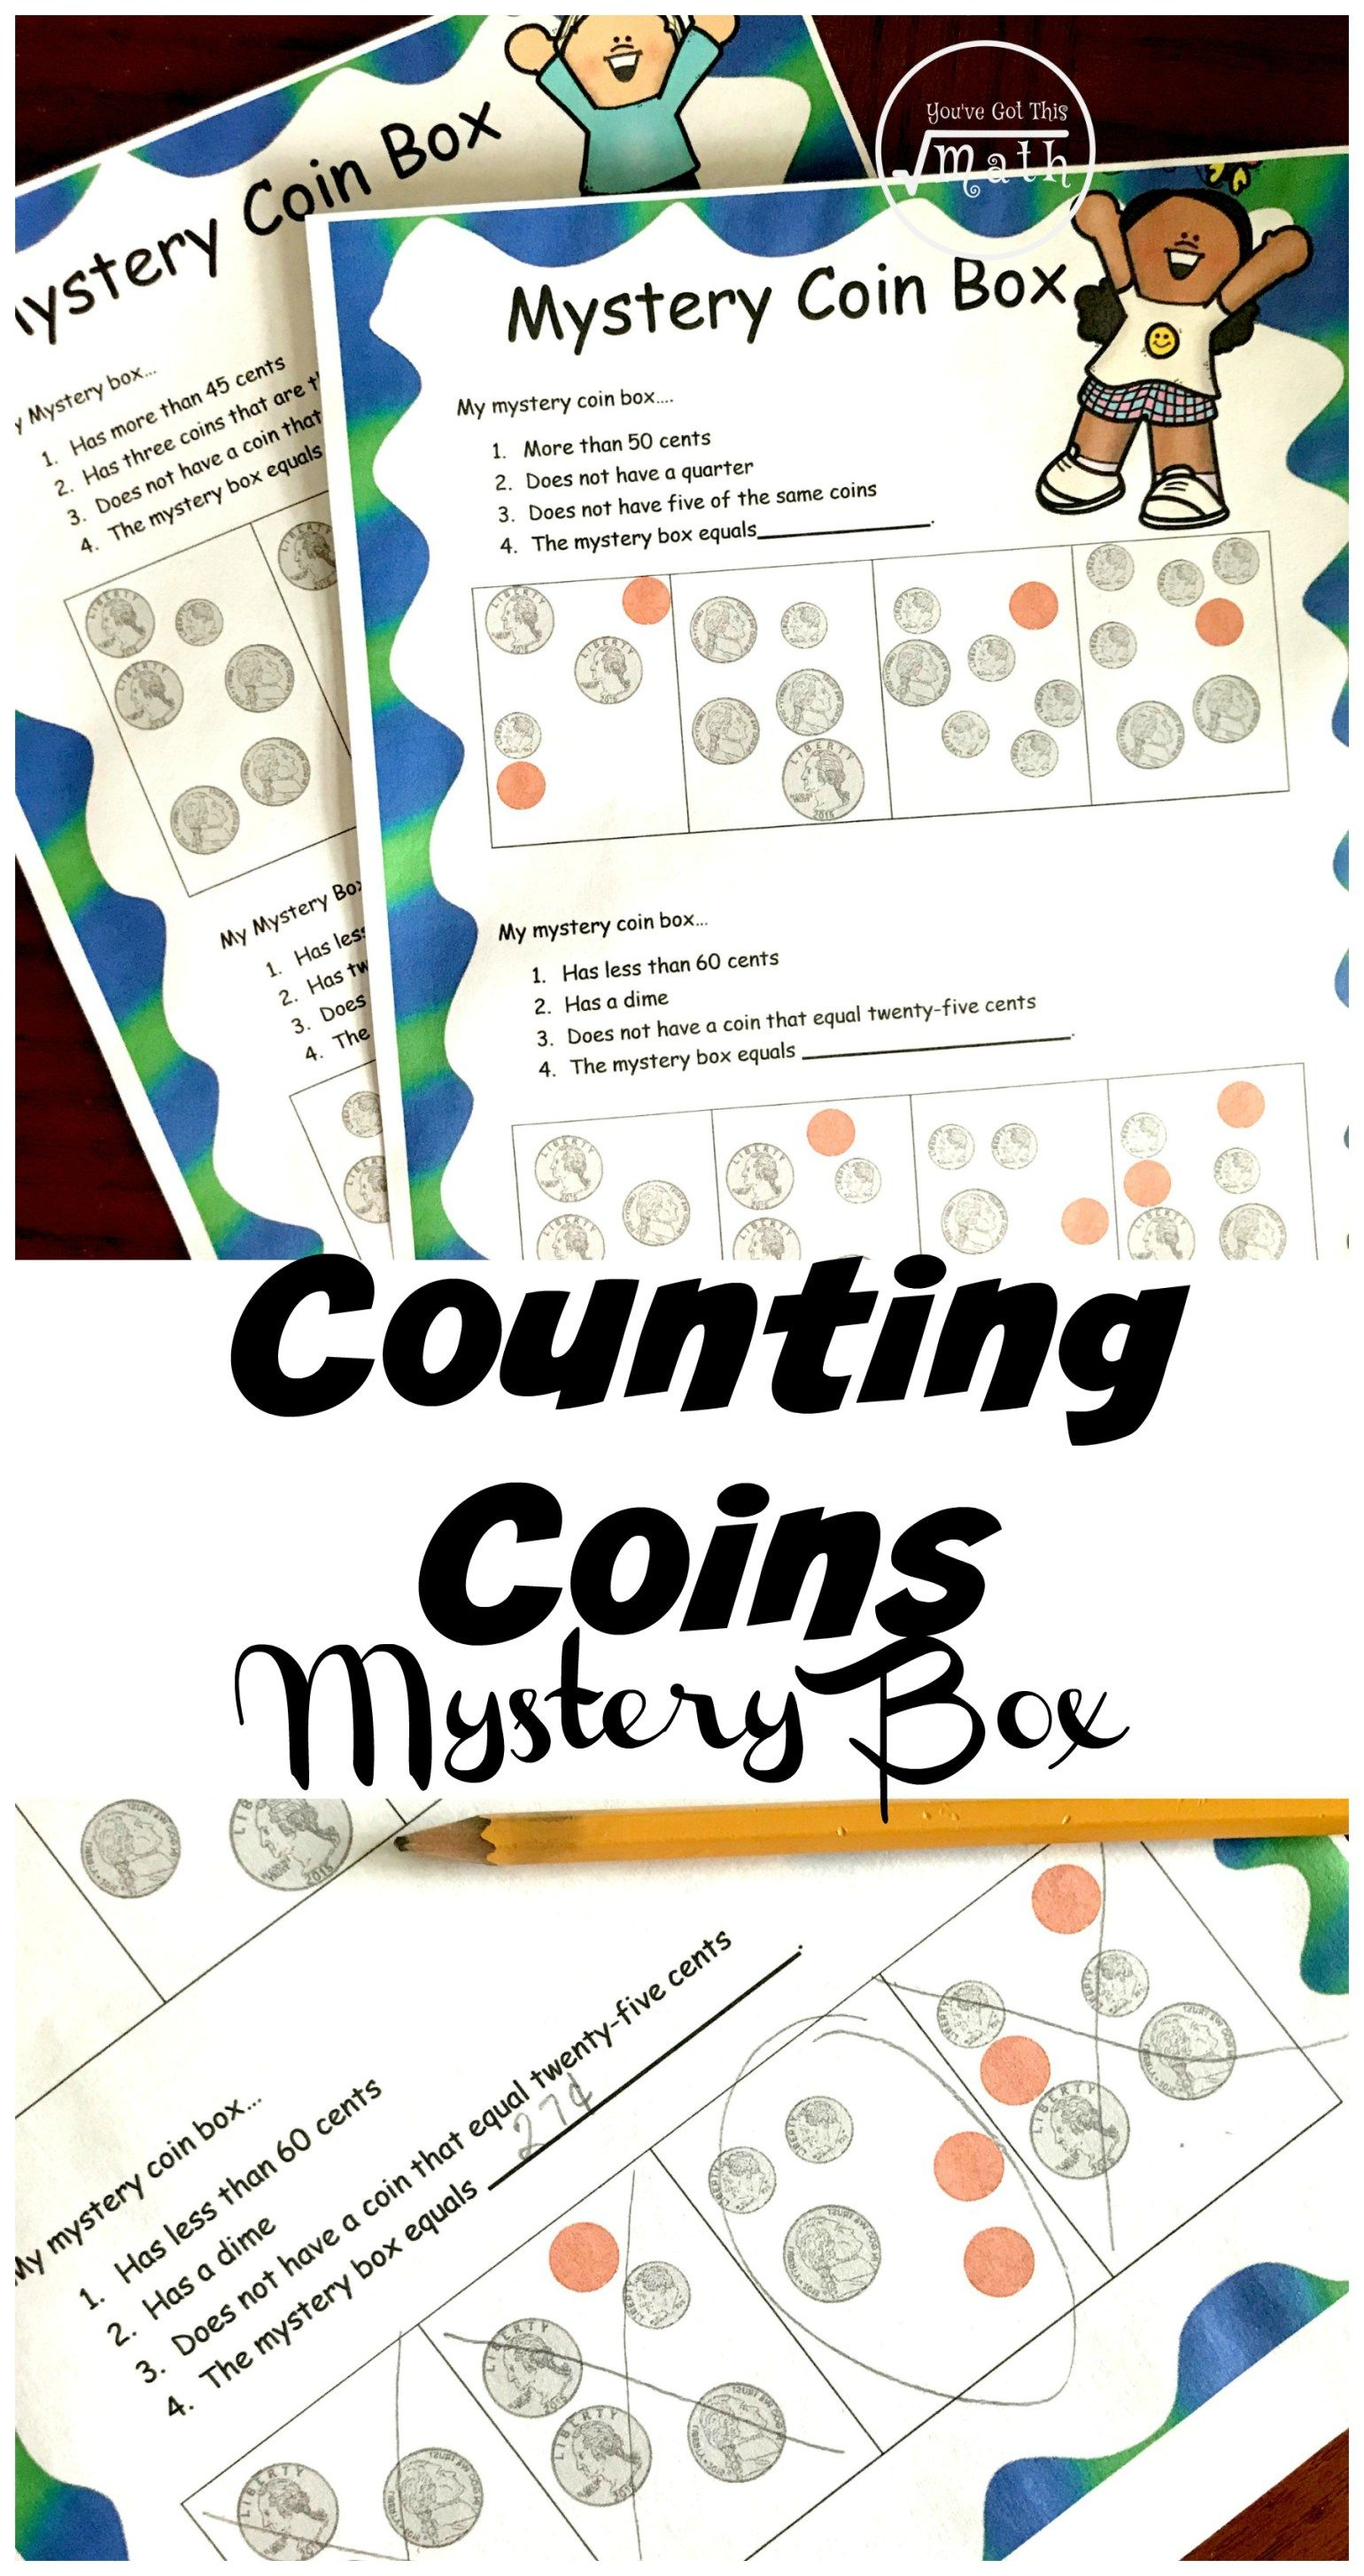 2 Free Counting Coin Worksheets With A Fun Twist Counting Coins Counting Coins Worksheet Counting Coins Activities [ 2908 x 1540 Pixel ]